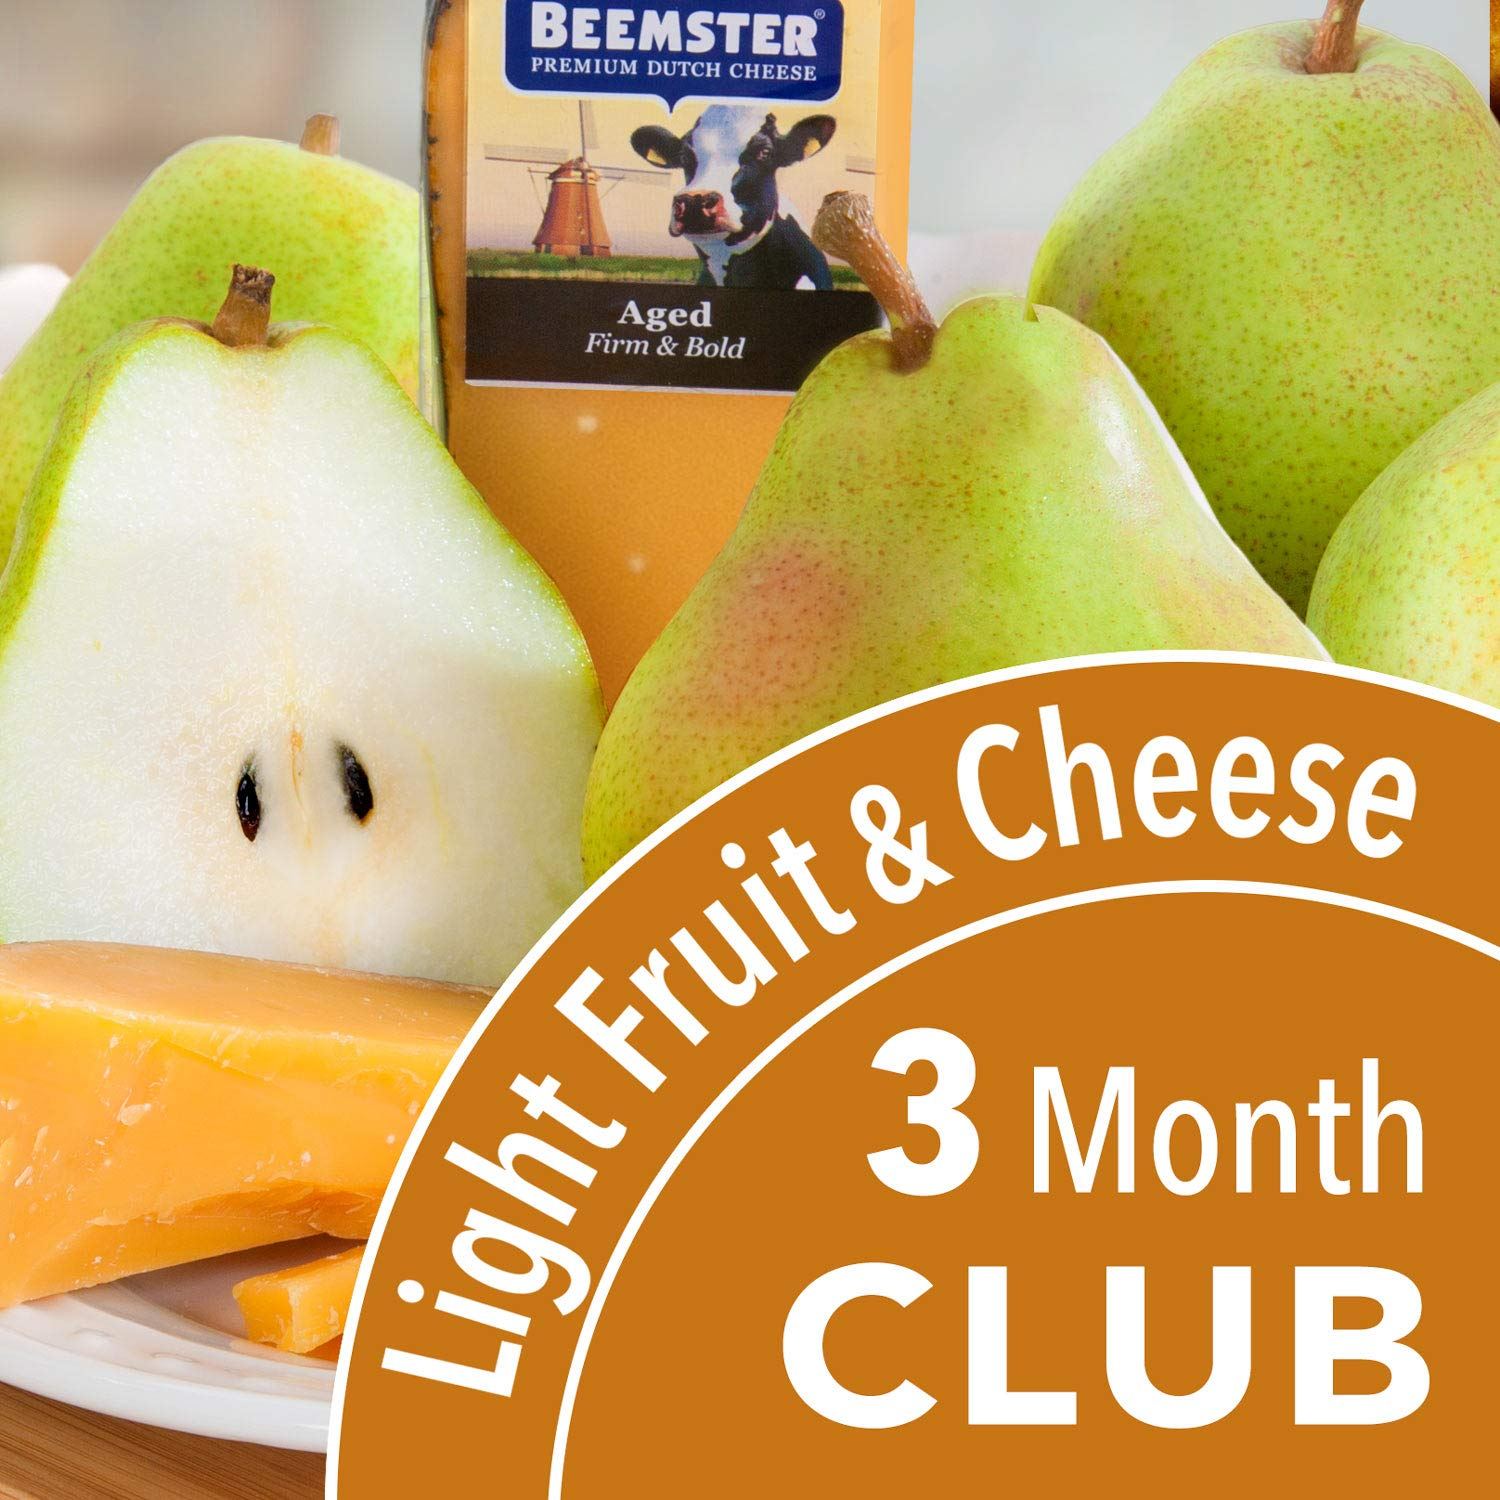 Golden State Fruit Monthly Fruit and Cheese Club (Light Version) - 3 Month Club